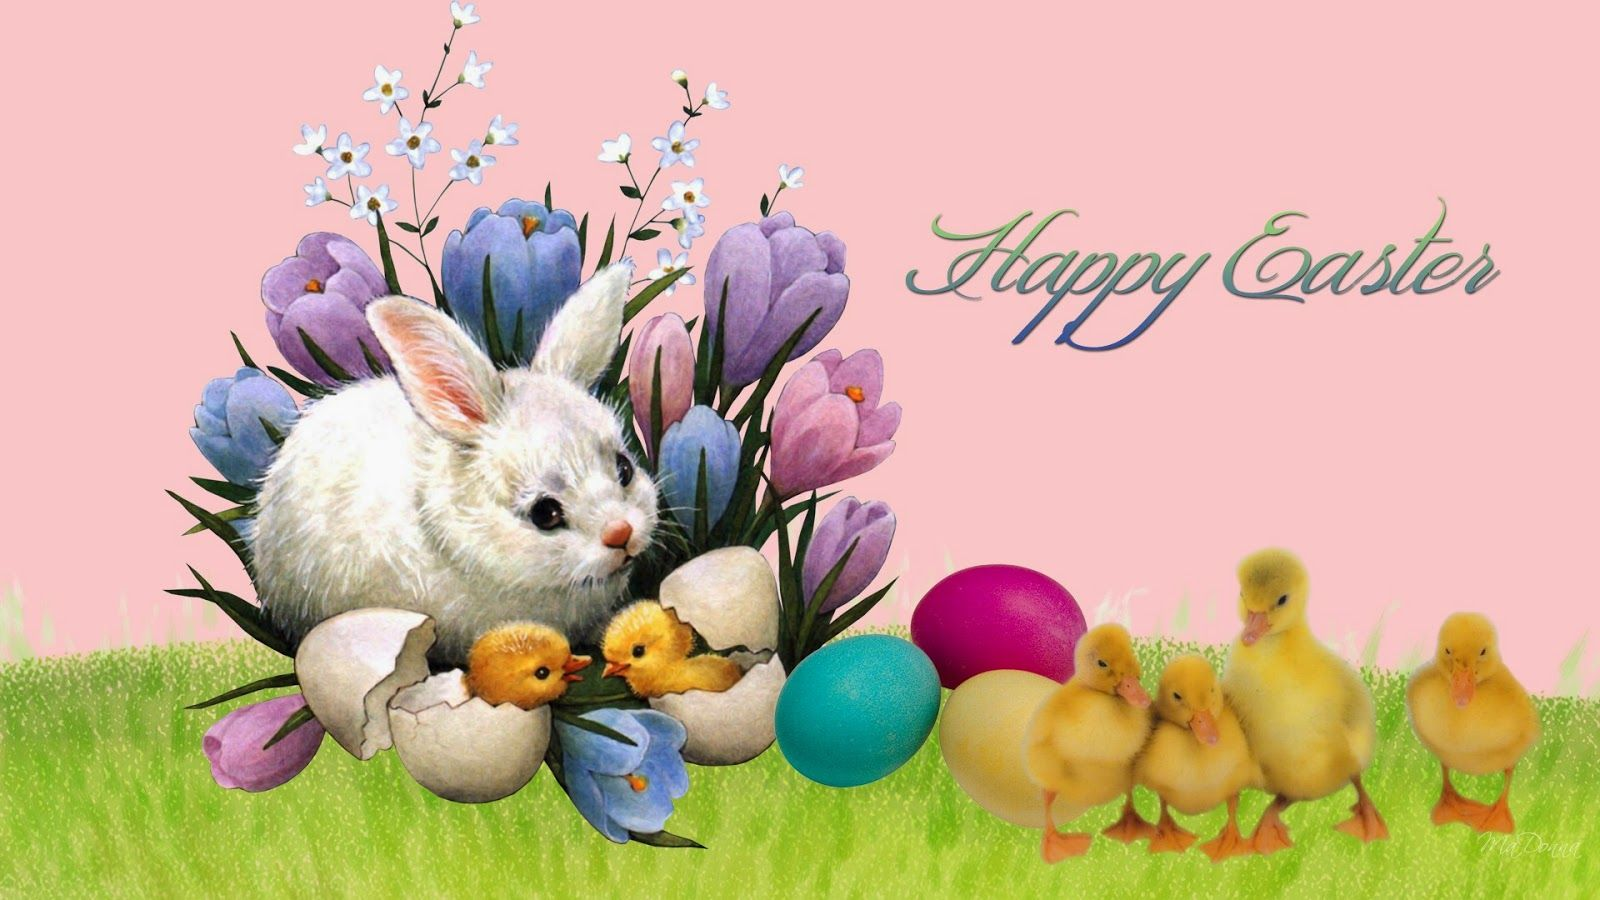 Great Collection Of Easter Hd Wallpapers Easter Quotes Easter